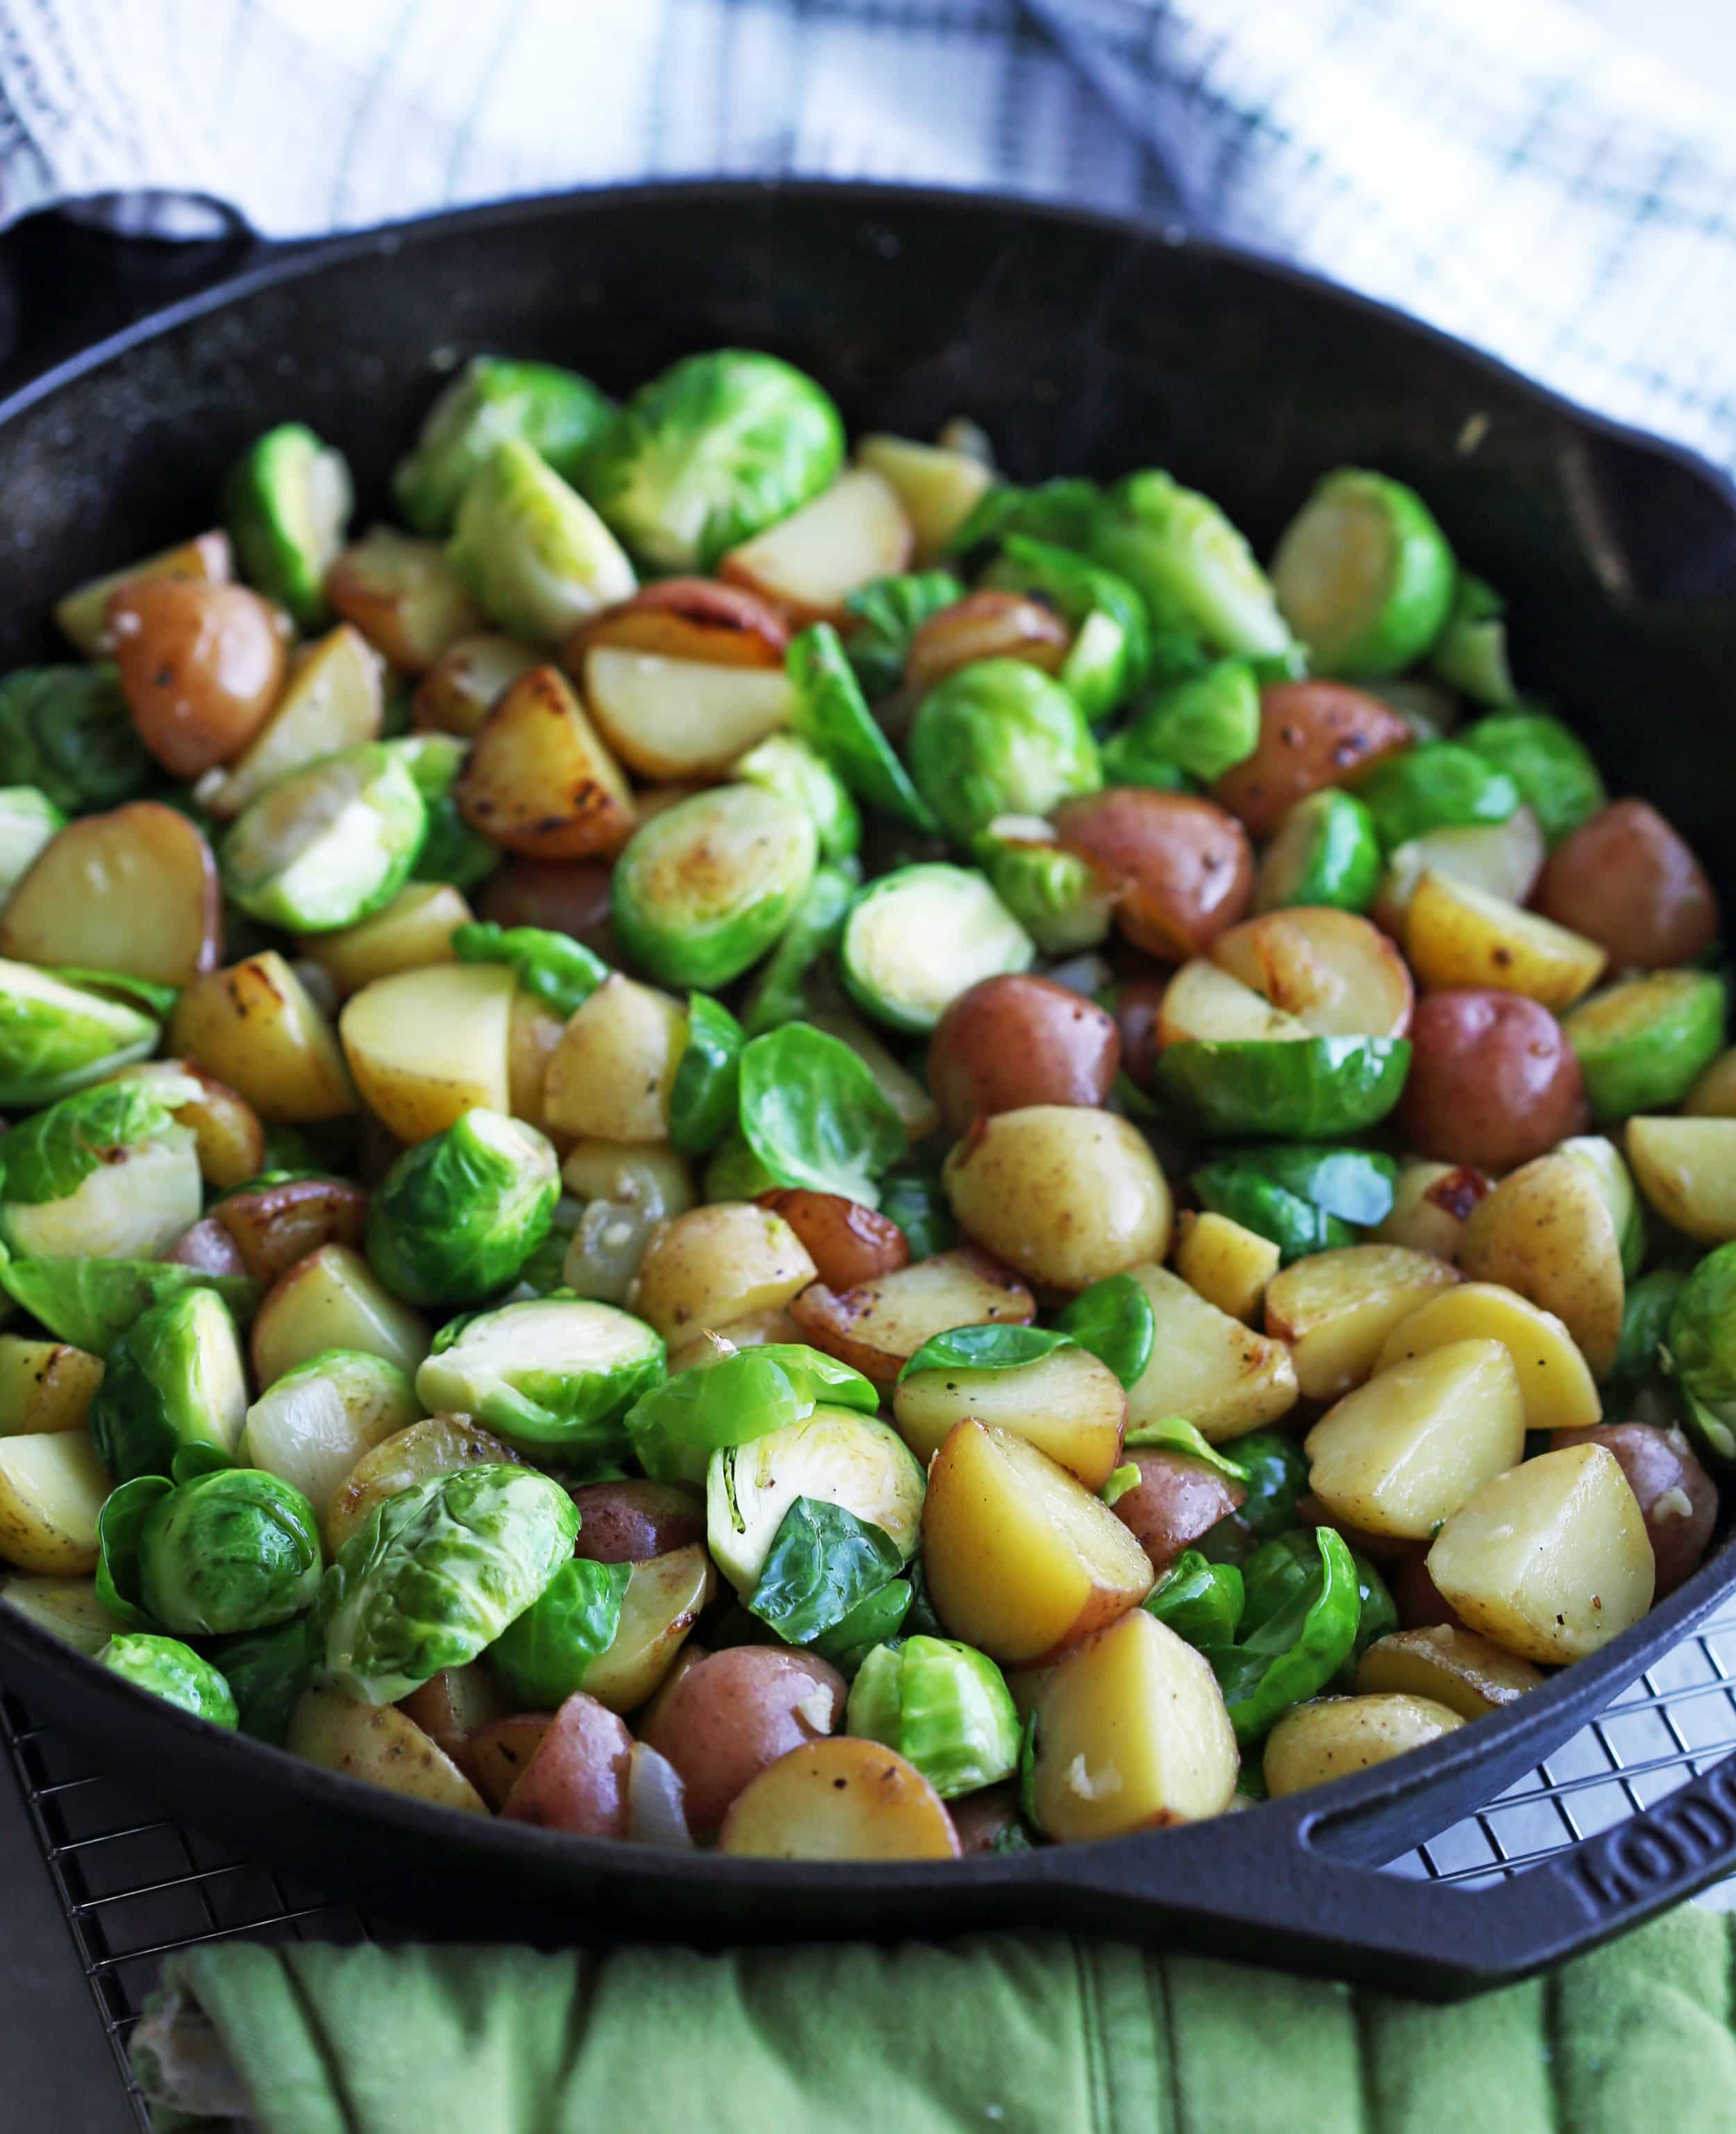 Sautéed onions, chopped baby potatoes, and halved Brussels sprouts in a cast iron skillet.